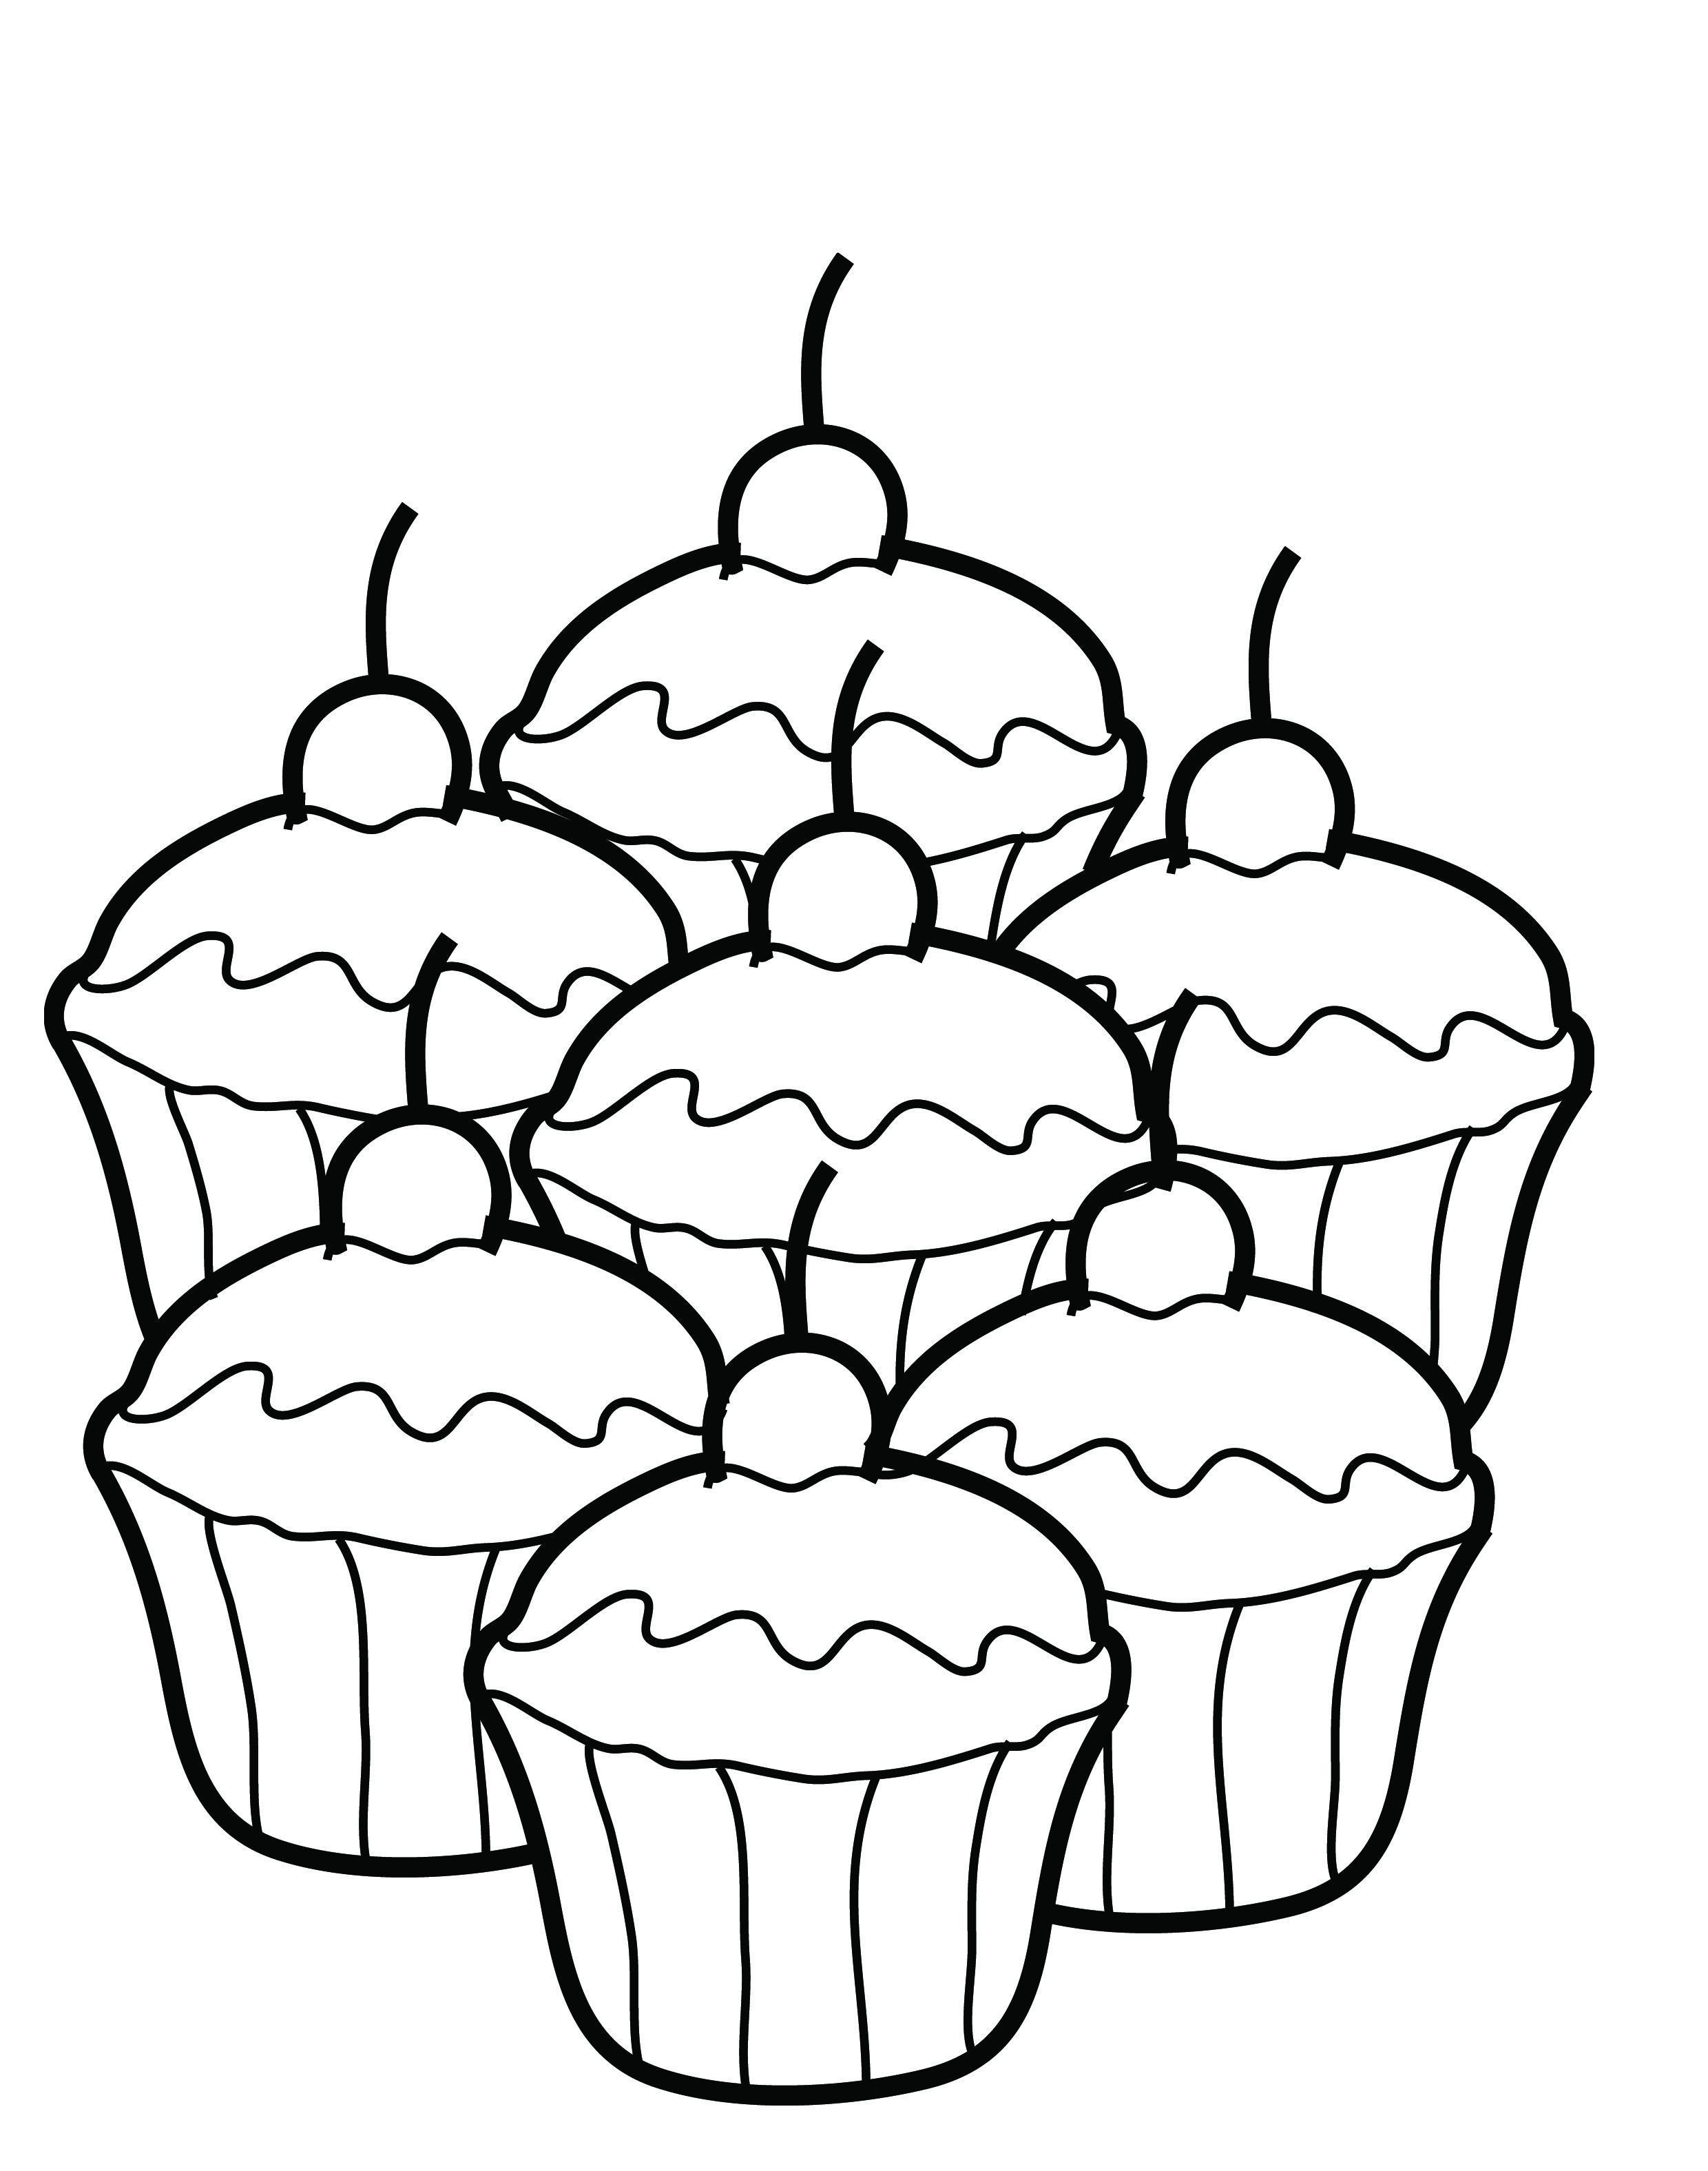 cupcake coloring pages for kids - Kids Colouring